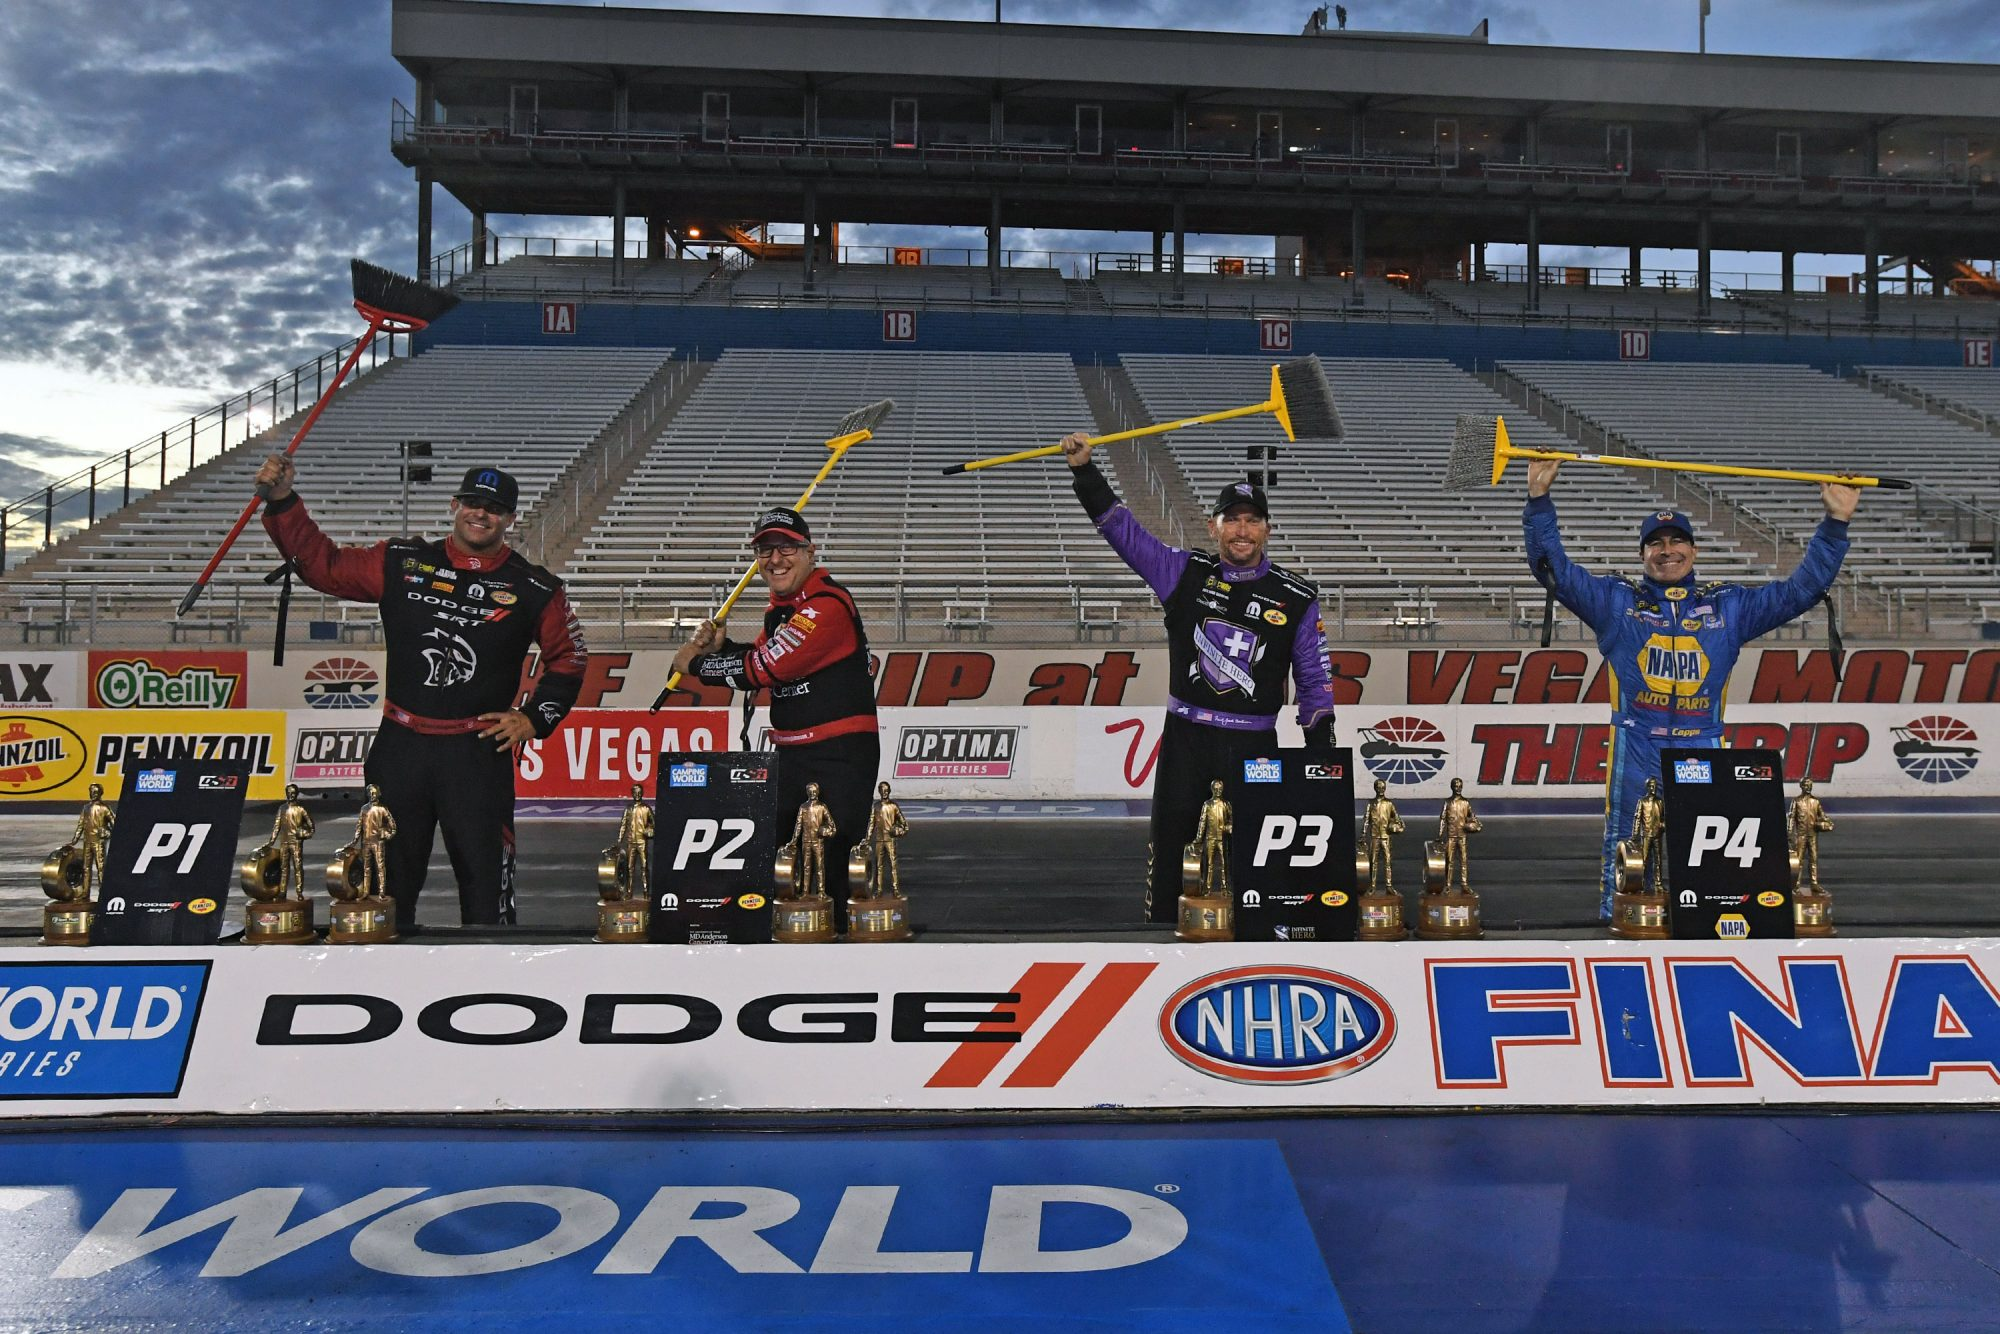 DSR drivers holding brooms representing a season sweep